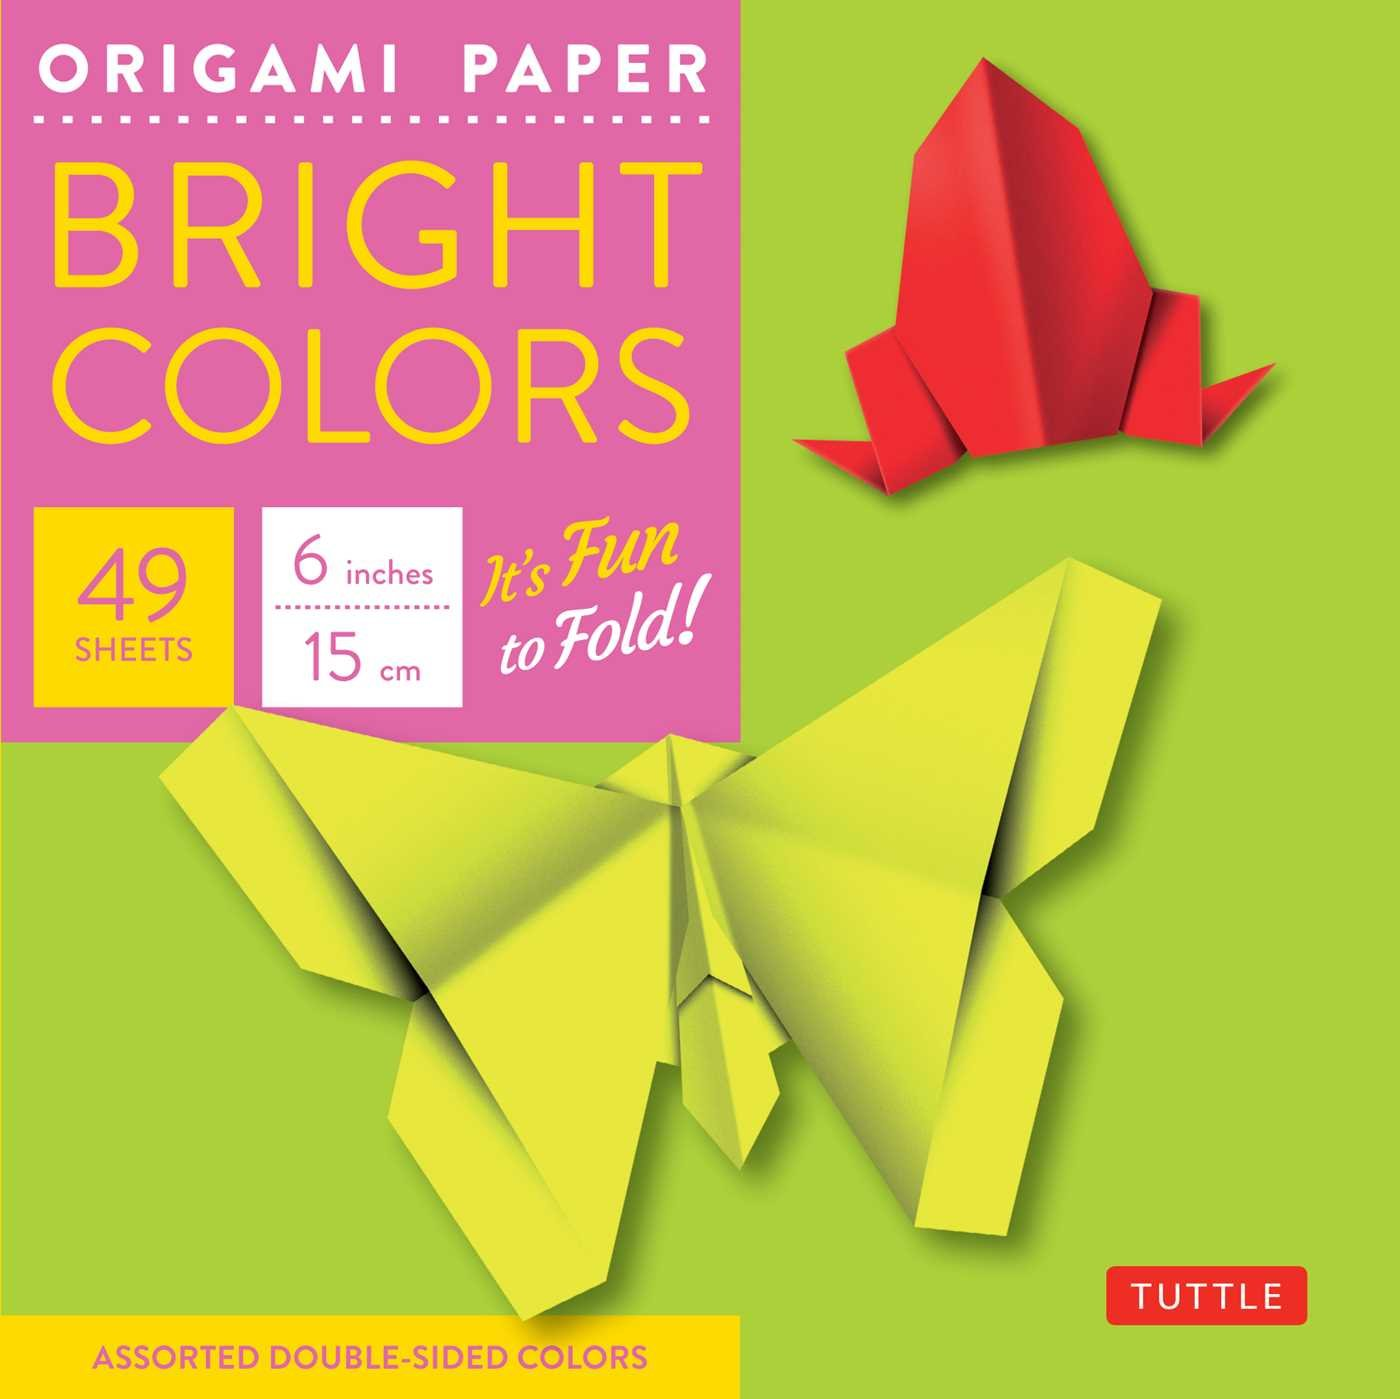 Amazon origami paper bright colors 6 49 sheets tuttle amazon origami paper bright colors 6 49 sheets tuttle origami paper high quality origami sheets printed with 6 different colors instructions jeuxipadfo Images